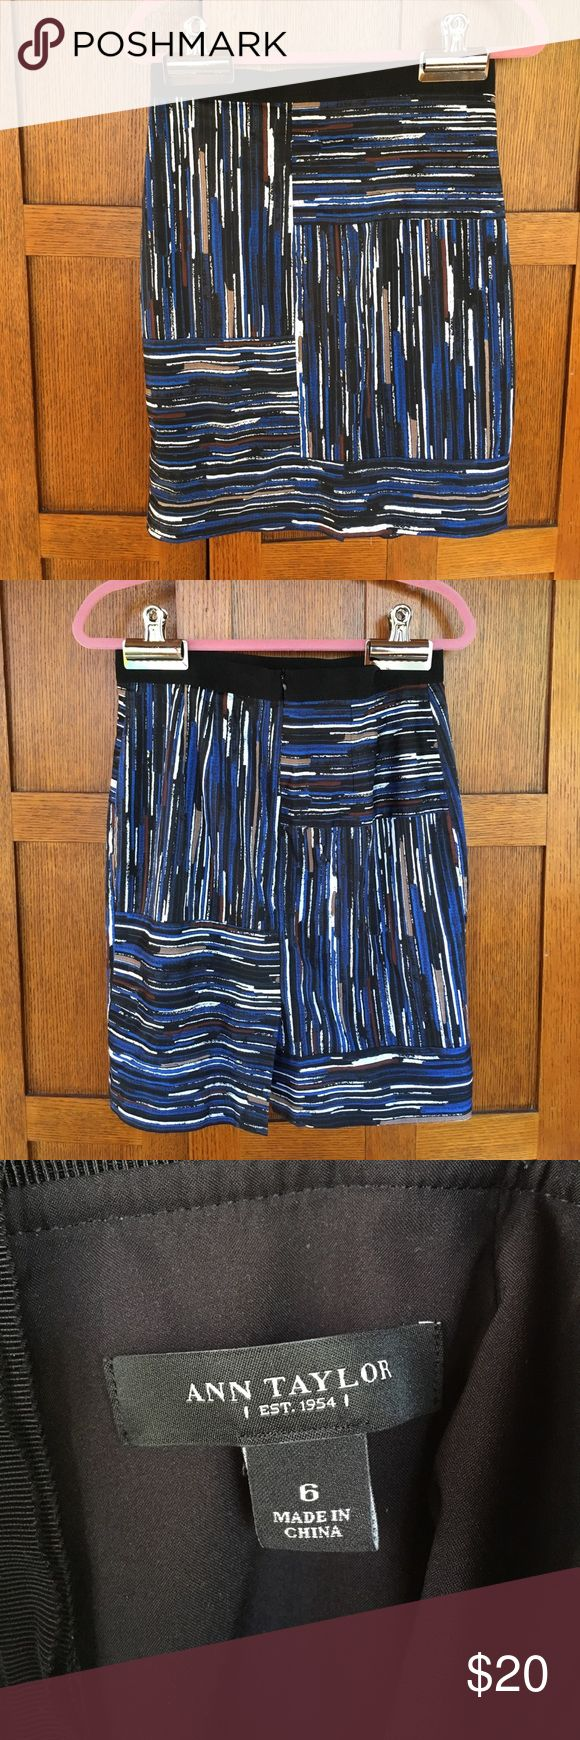 Ann Taylor blue pencil skirt, size 6 Blue and black striped pencil skirt with back slit. Lined. Great office skirt. Size 6 Ann Taylor Skirts Pencil